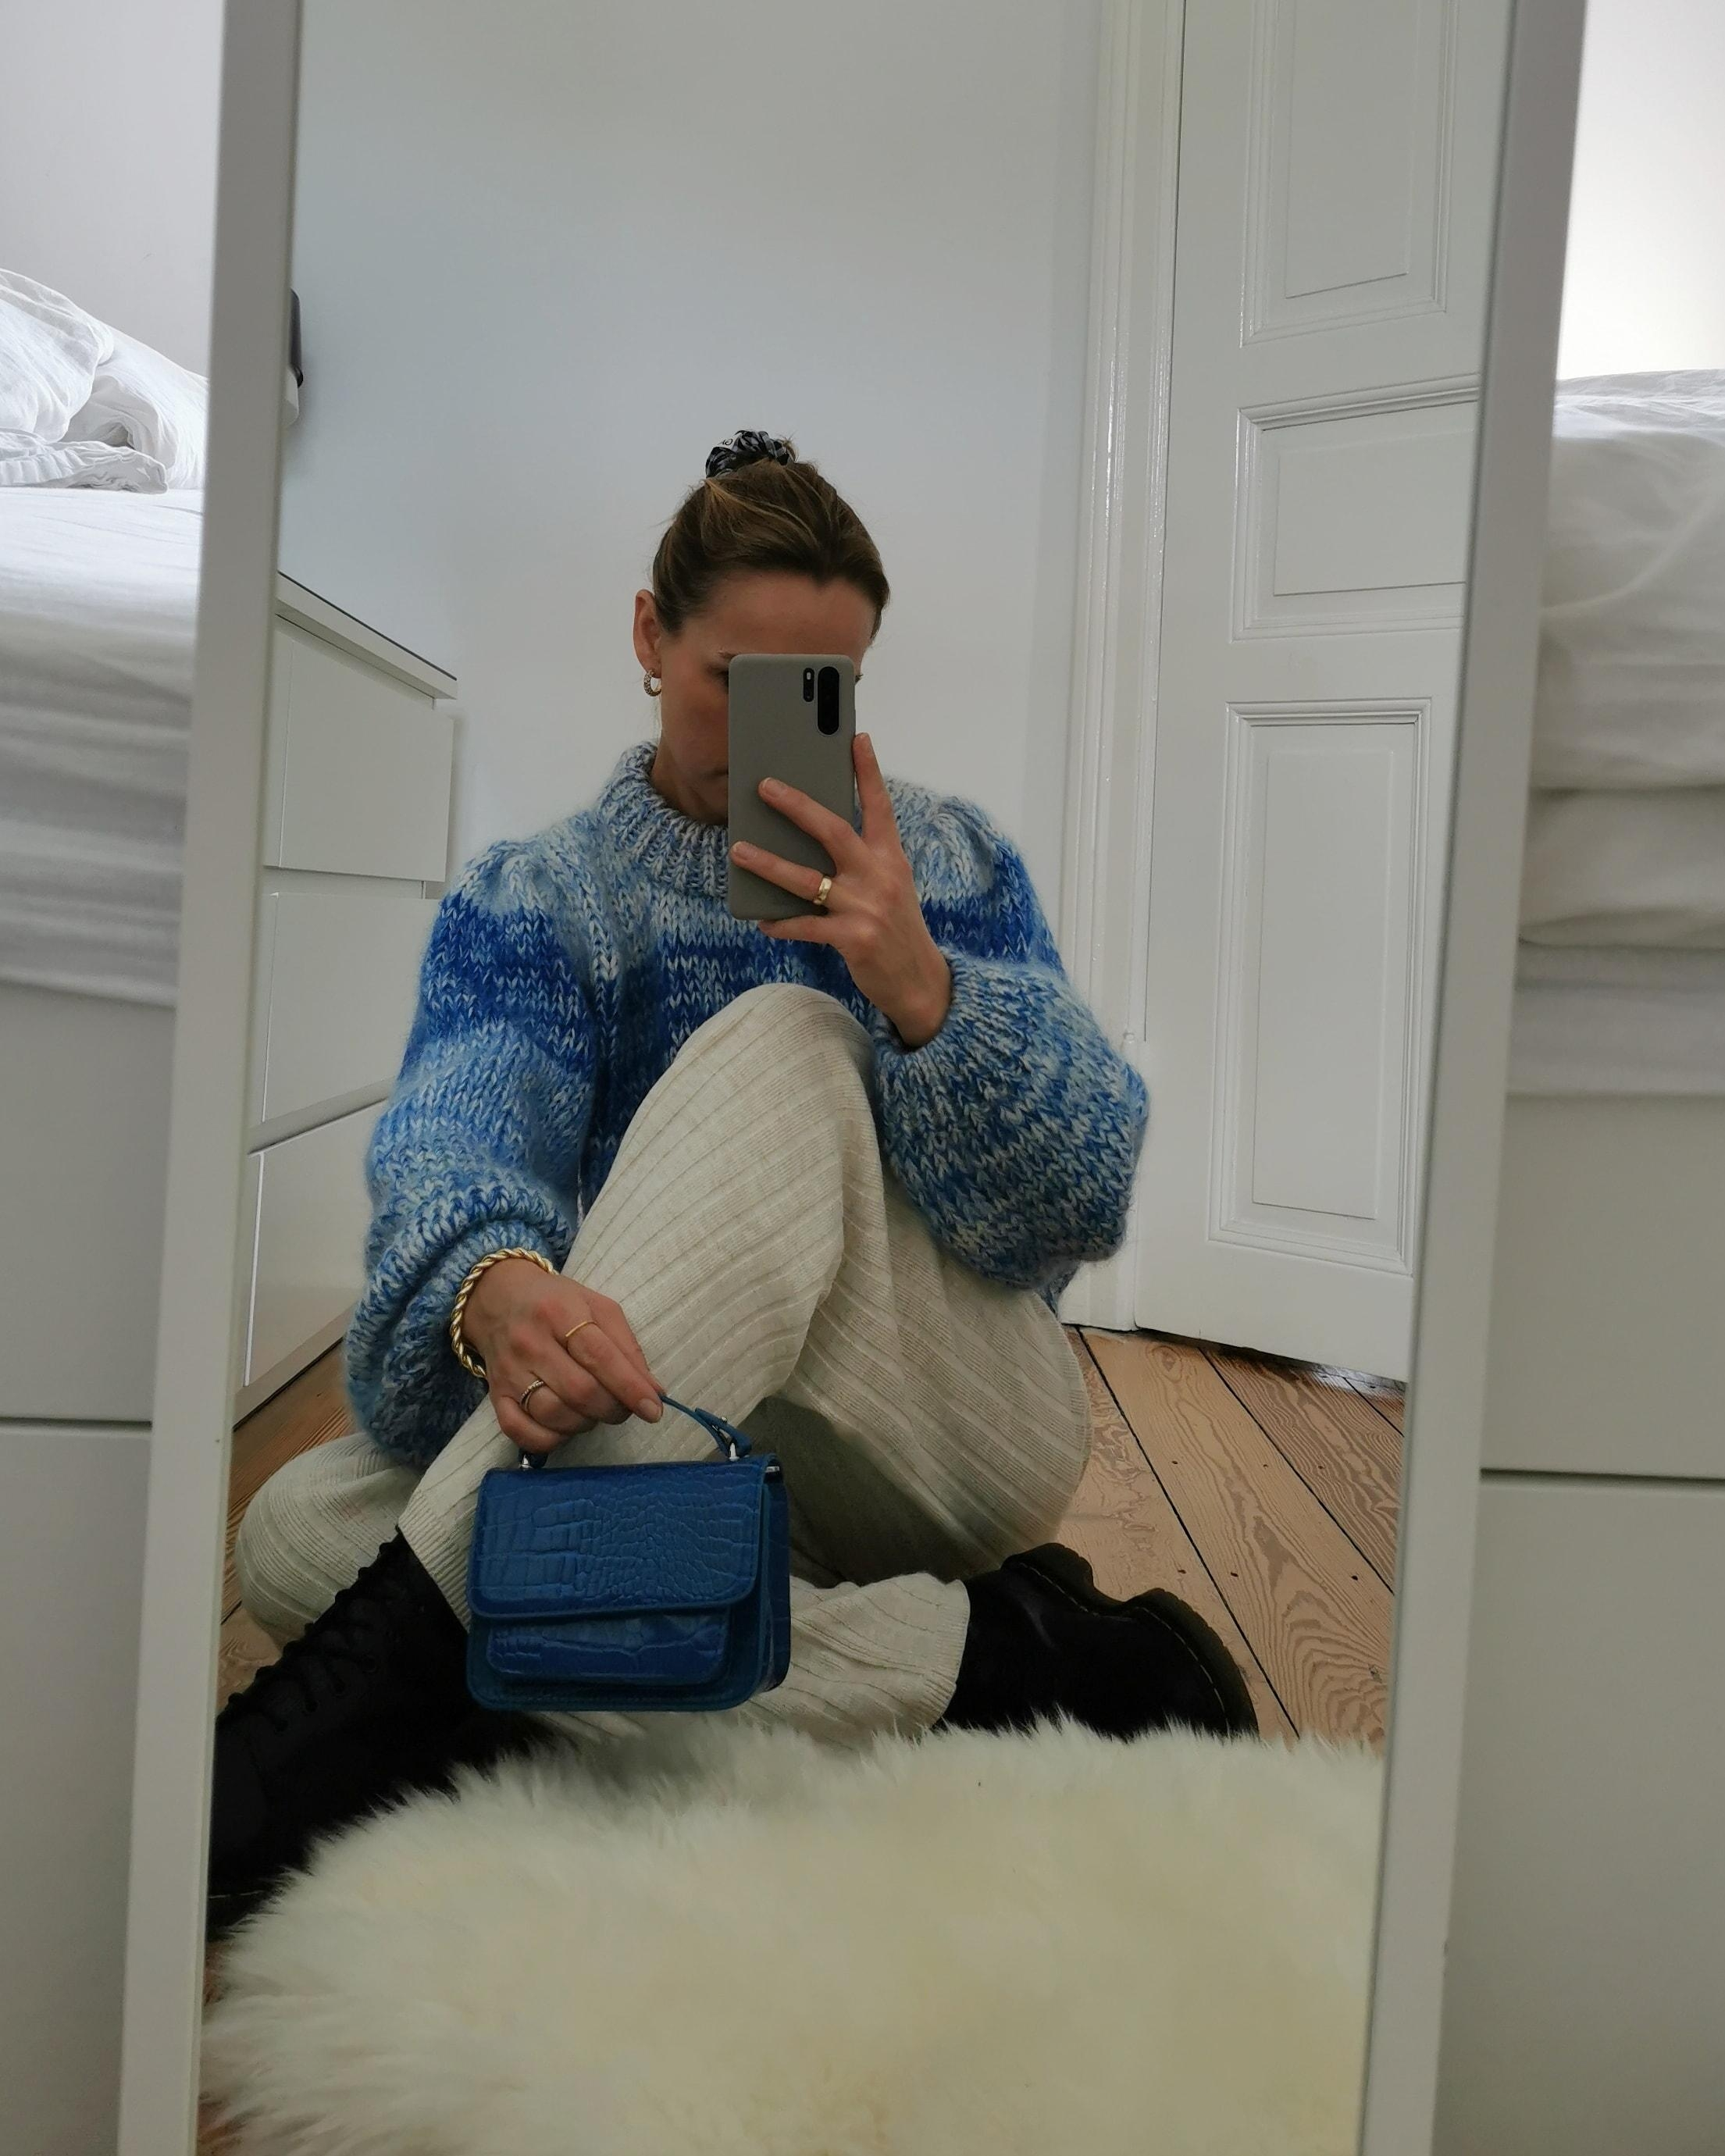 Cozy knitwear 💙 #herbstlook #fashion #fashioncrush #boots #bag #knit #knitpants